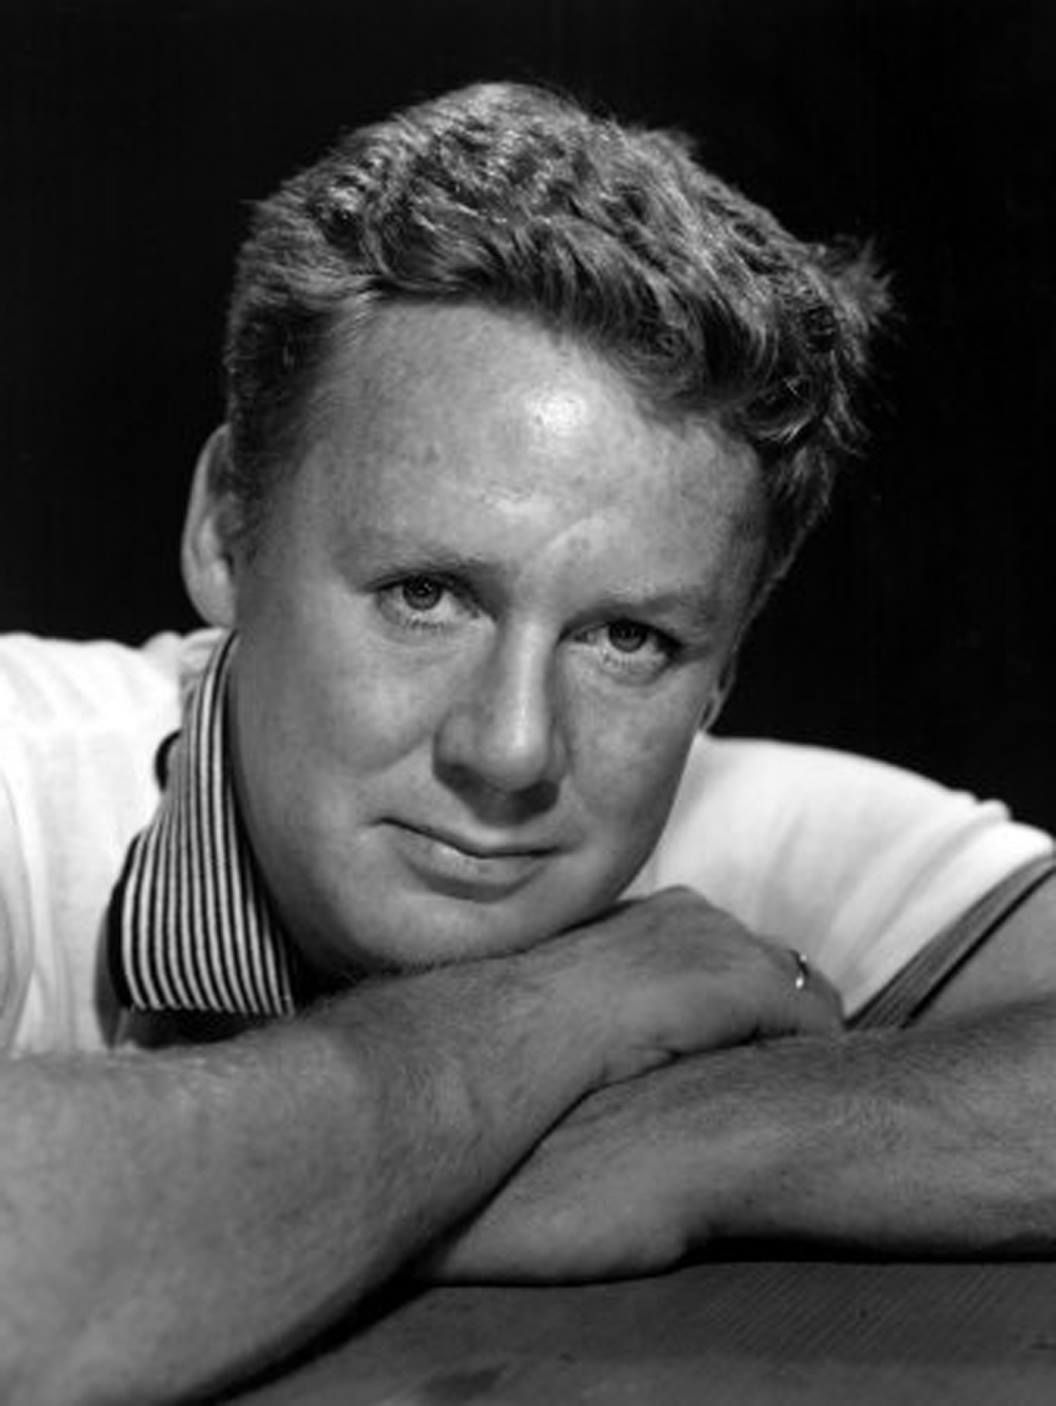 Van Johnson (August 25, 1916 – December 12, 2008) was an American film actor of stage, motion pictures and television from the late 1930s until the early 1990s. A dancer, he was a major star at Metro-Goldwyn-Mayer during and after World War II.